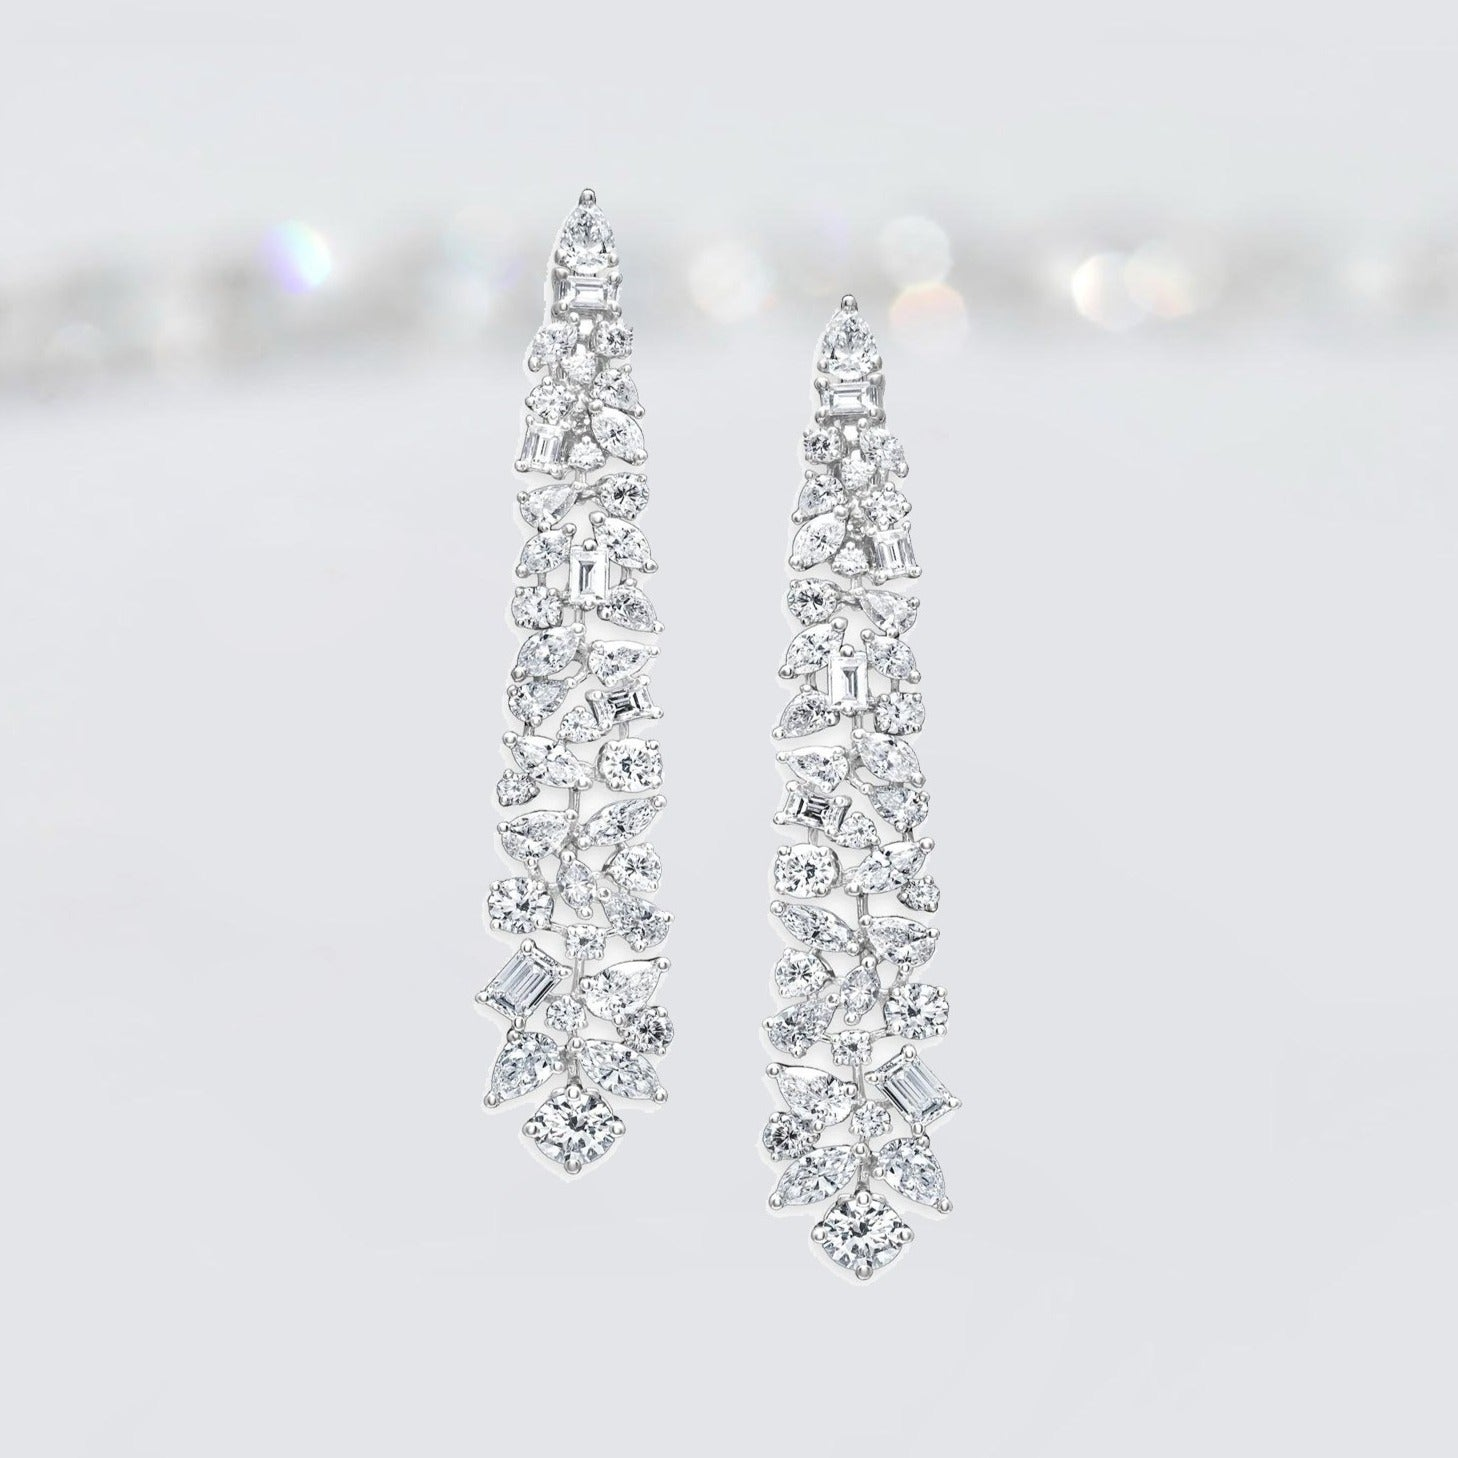 'Captivating' Mixed Cut Chandelier Earrings